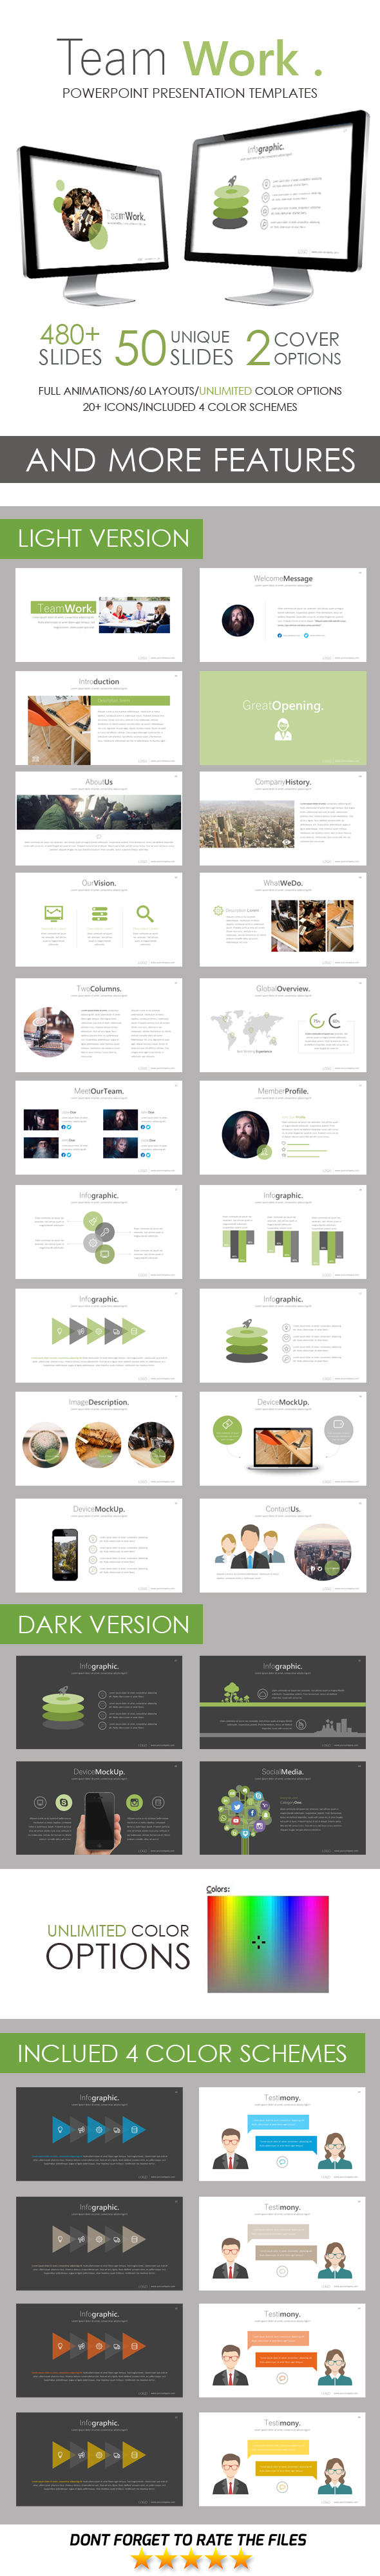 Team Work PowerPoint Template